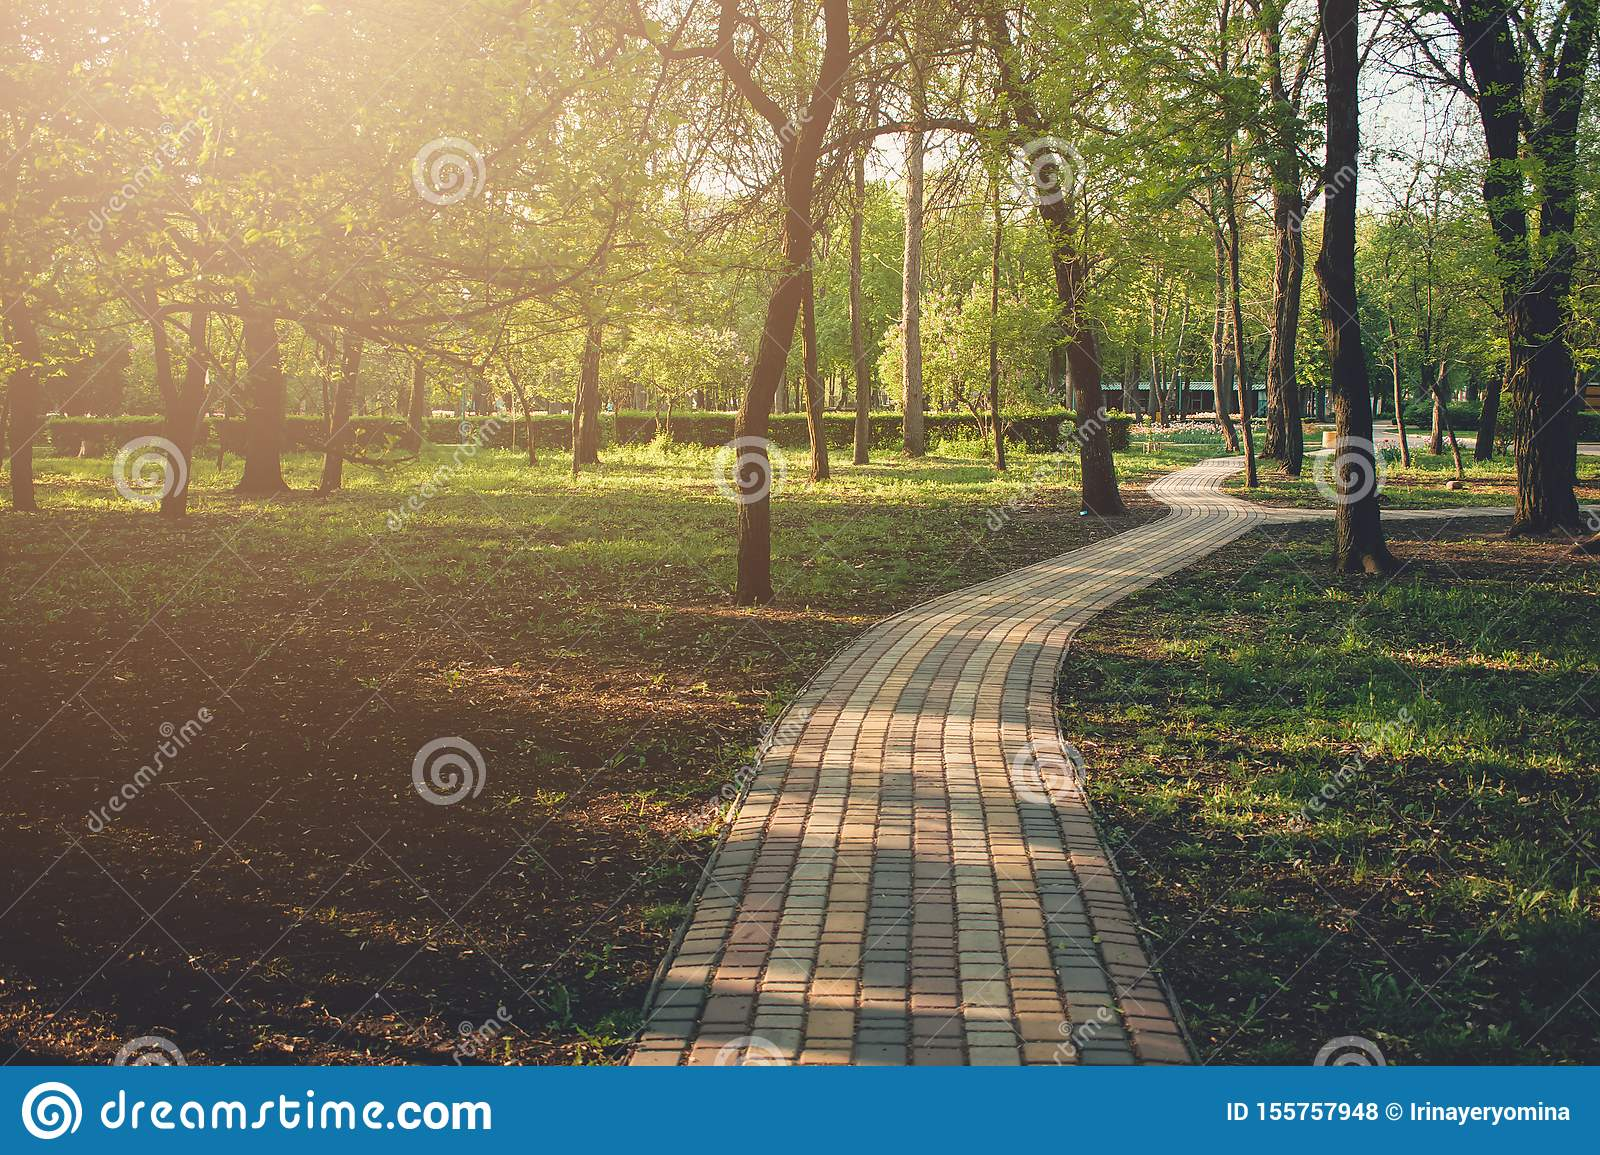 Alley, Pathway In The City Park In Sunlight. Cobbled Alley ...